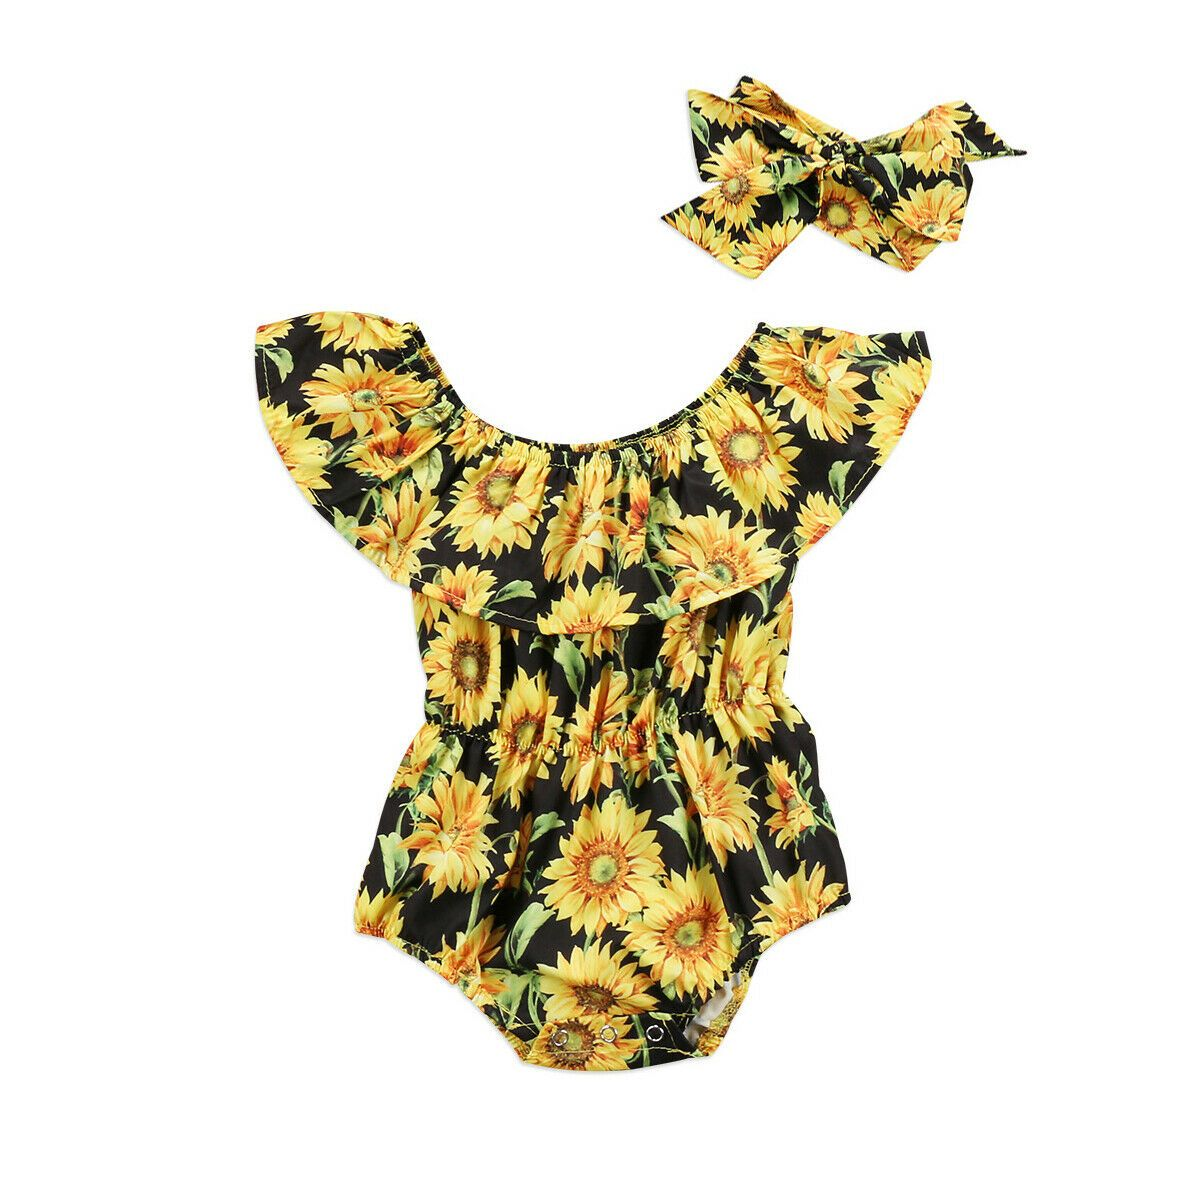 Newborn Baby Girl Bodysuit Romper Jumpsuit Summer Sleeveless Clothes Outfits Set